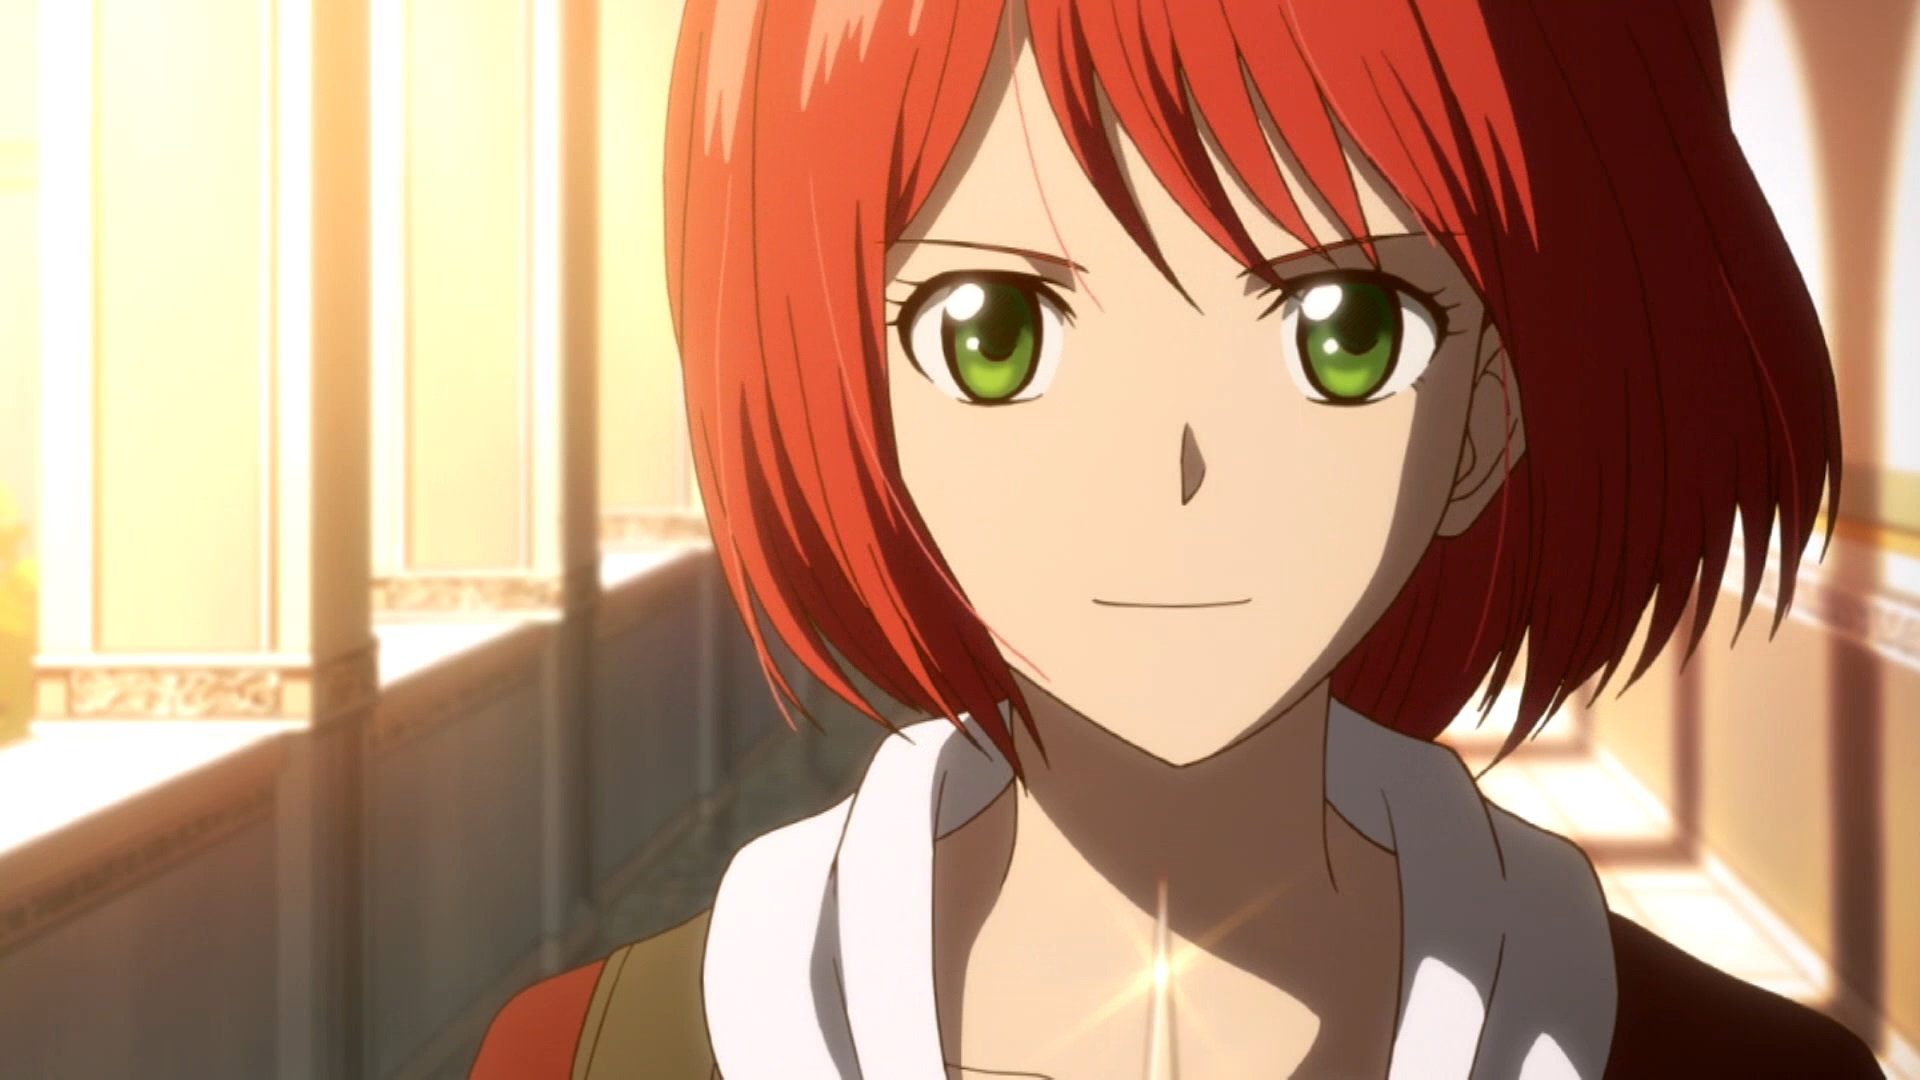 Shirayuki looking proud